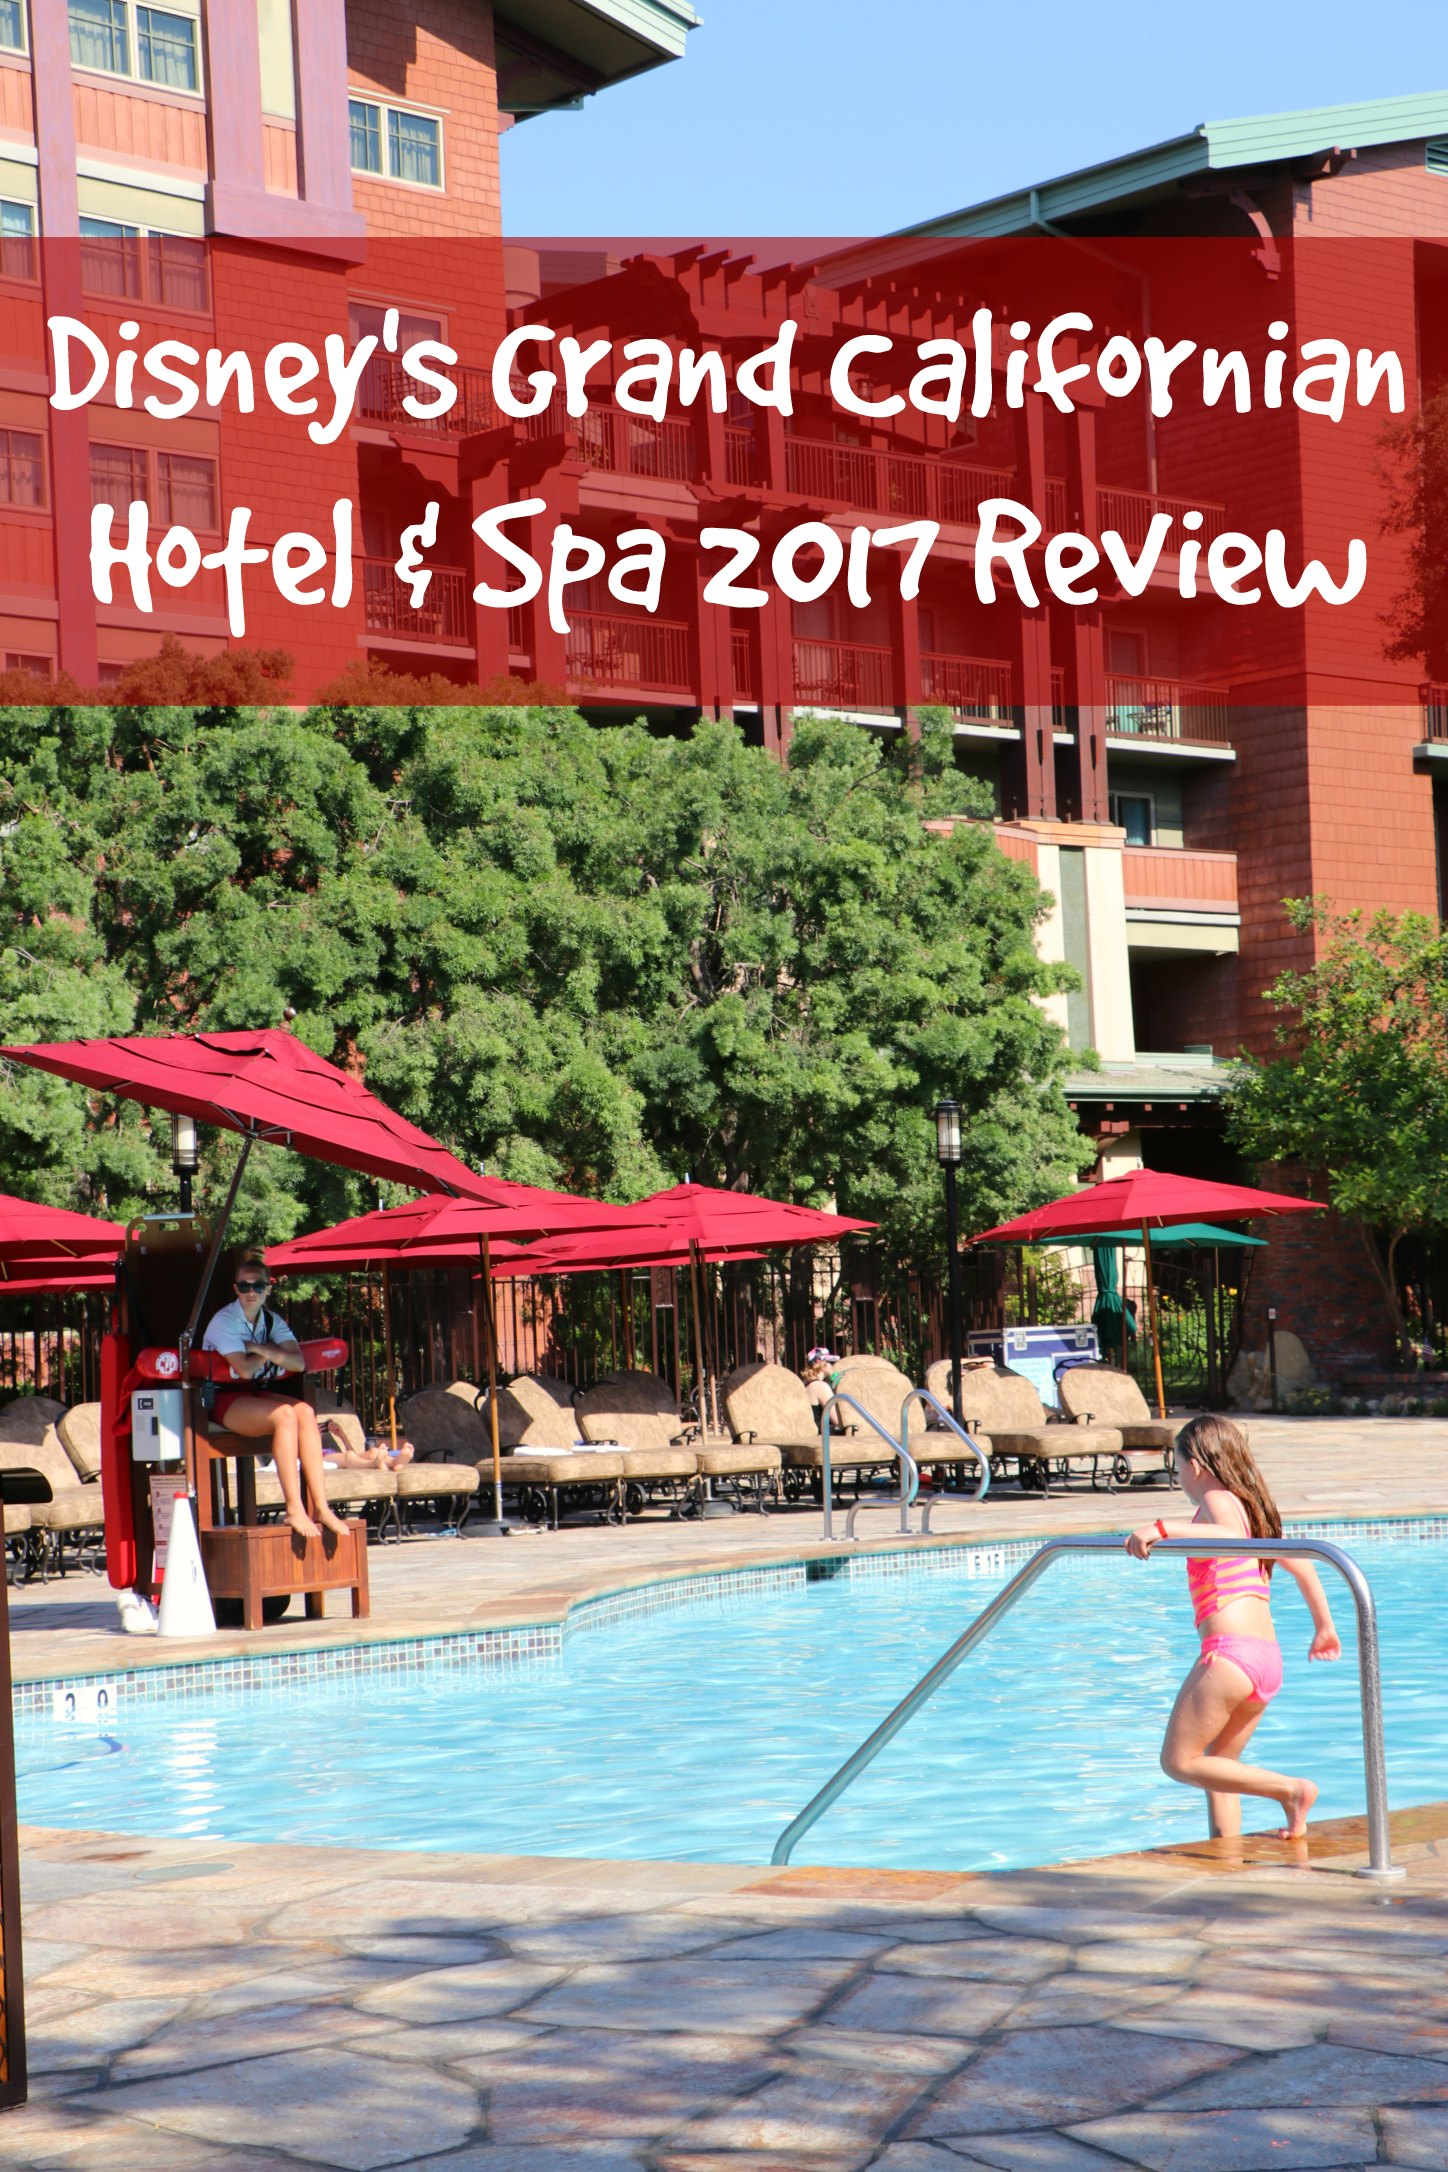 disney's grand californian hotel & spa review 2017 – it's a lovely